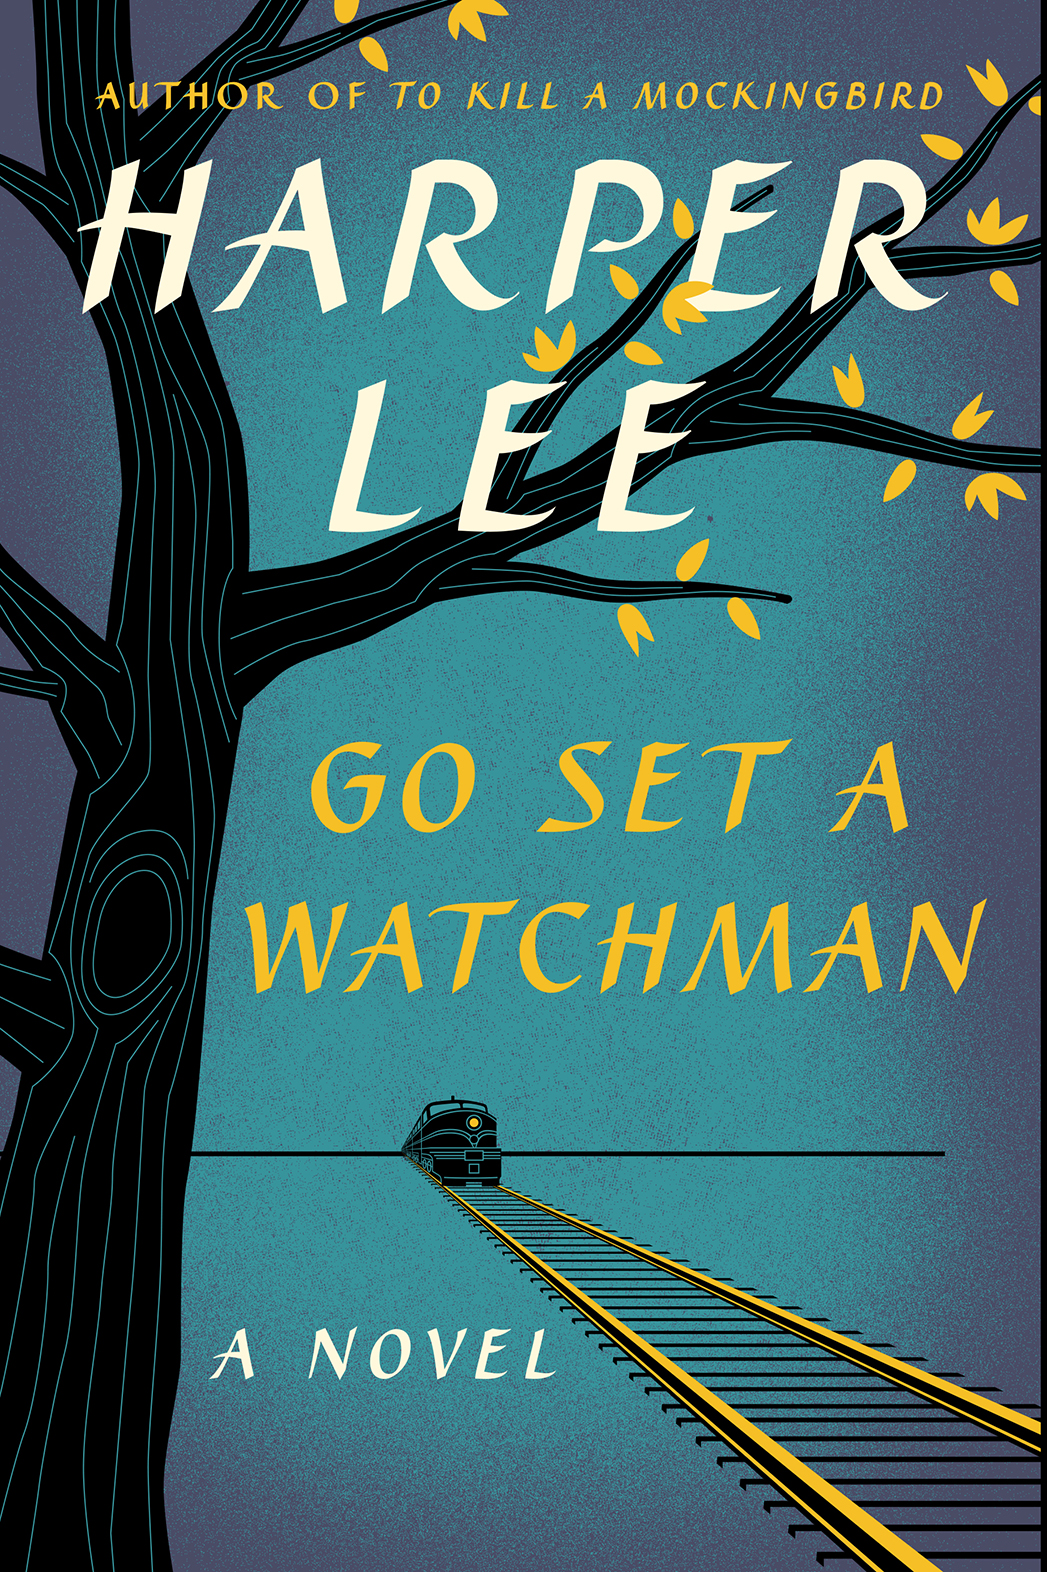 Harper Lee Go Set a Watchman Cover P 2015